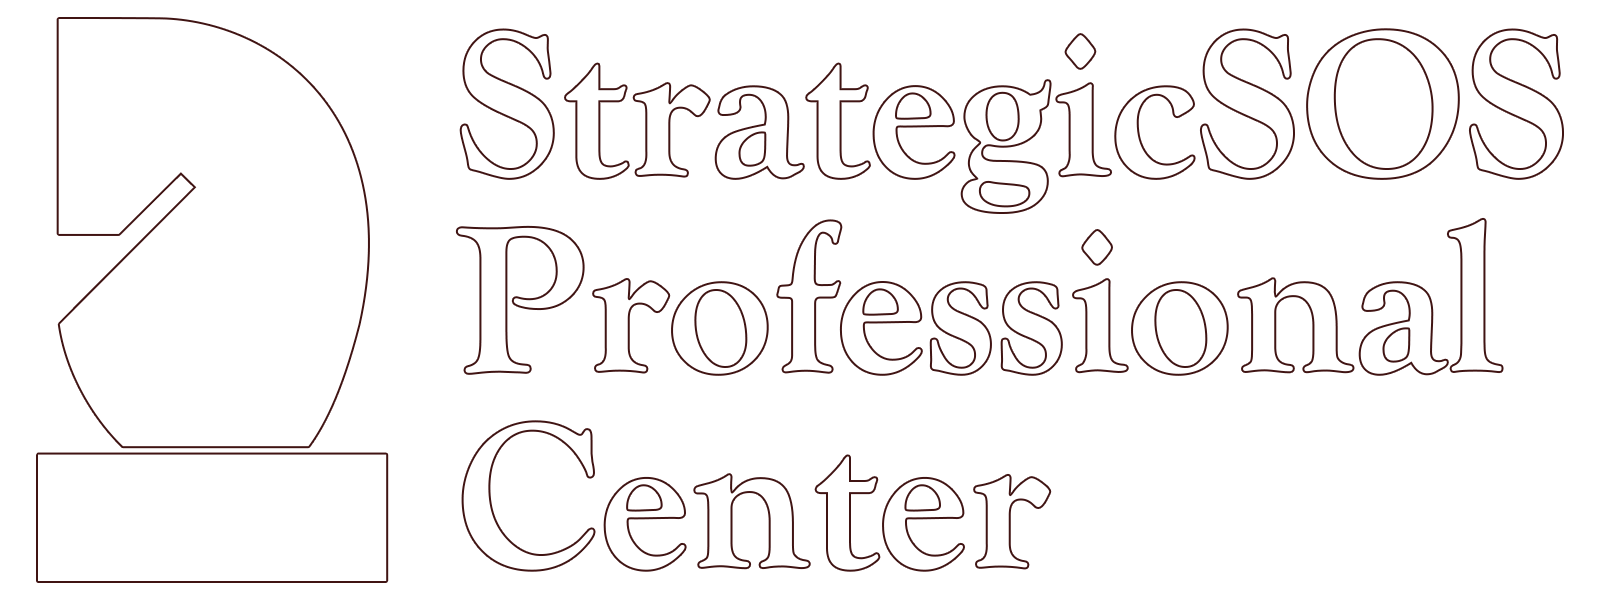 Strategic SOS Center